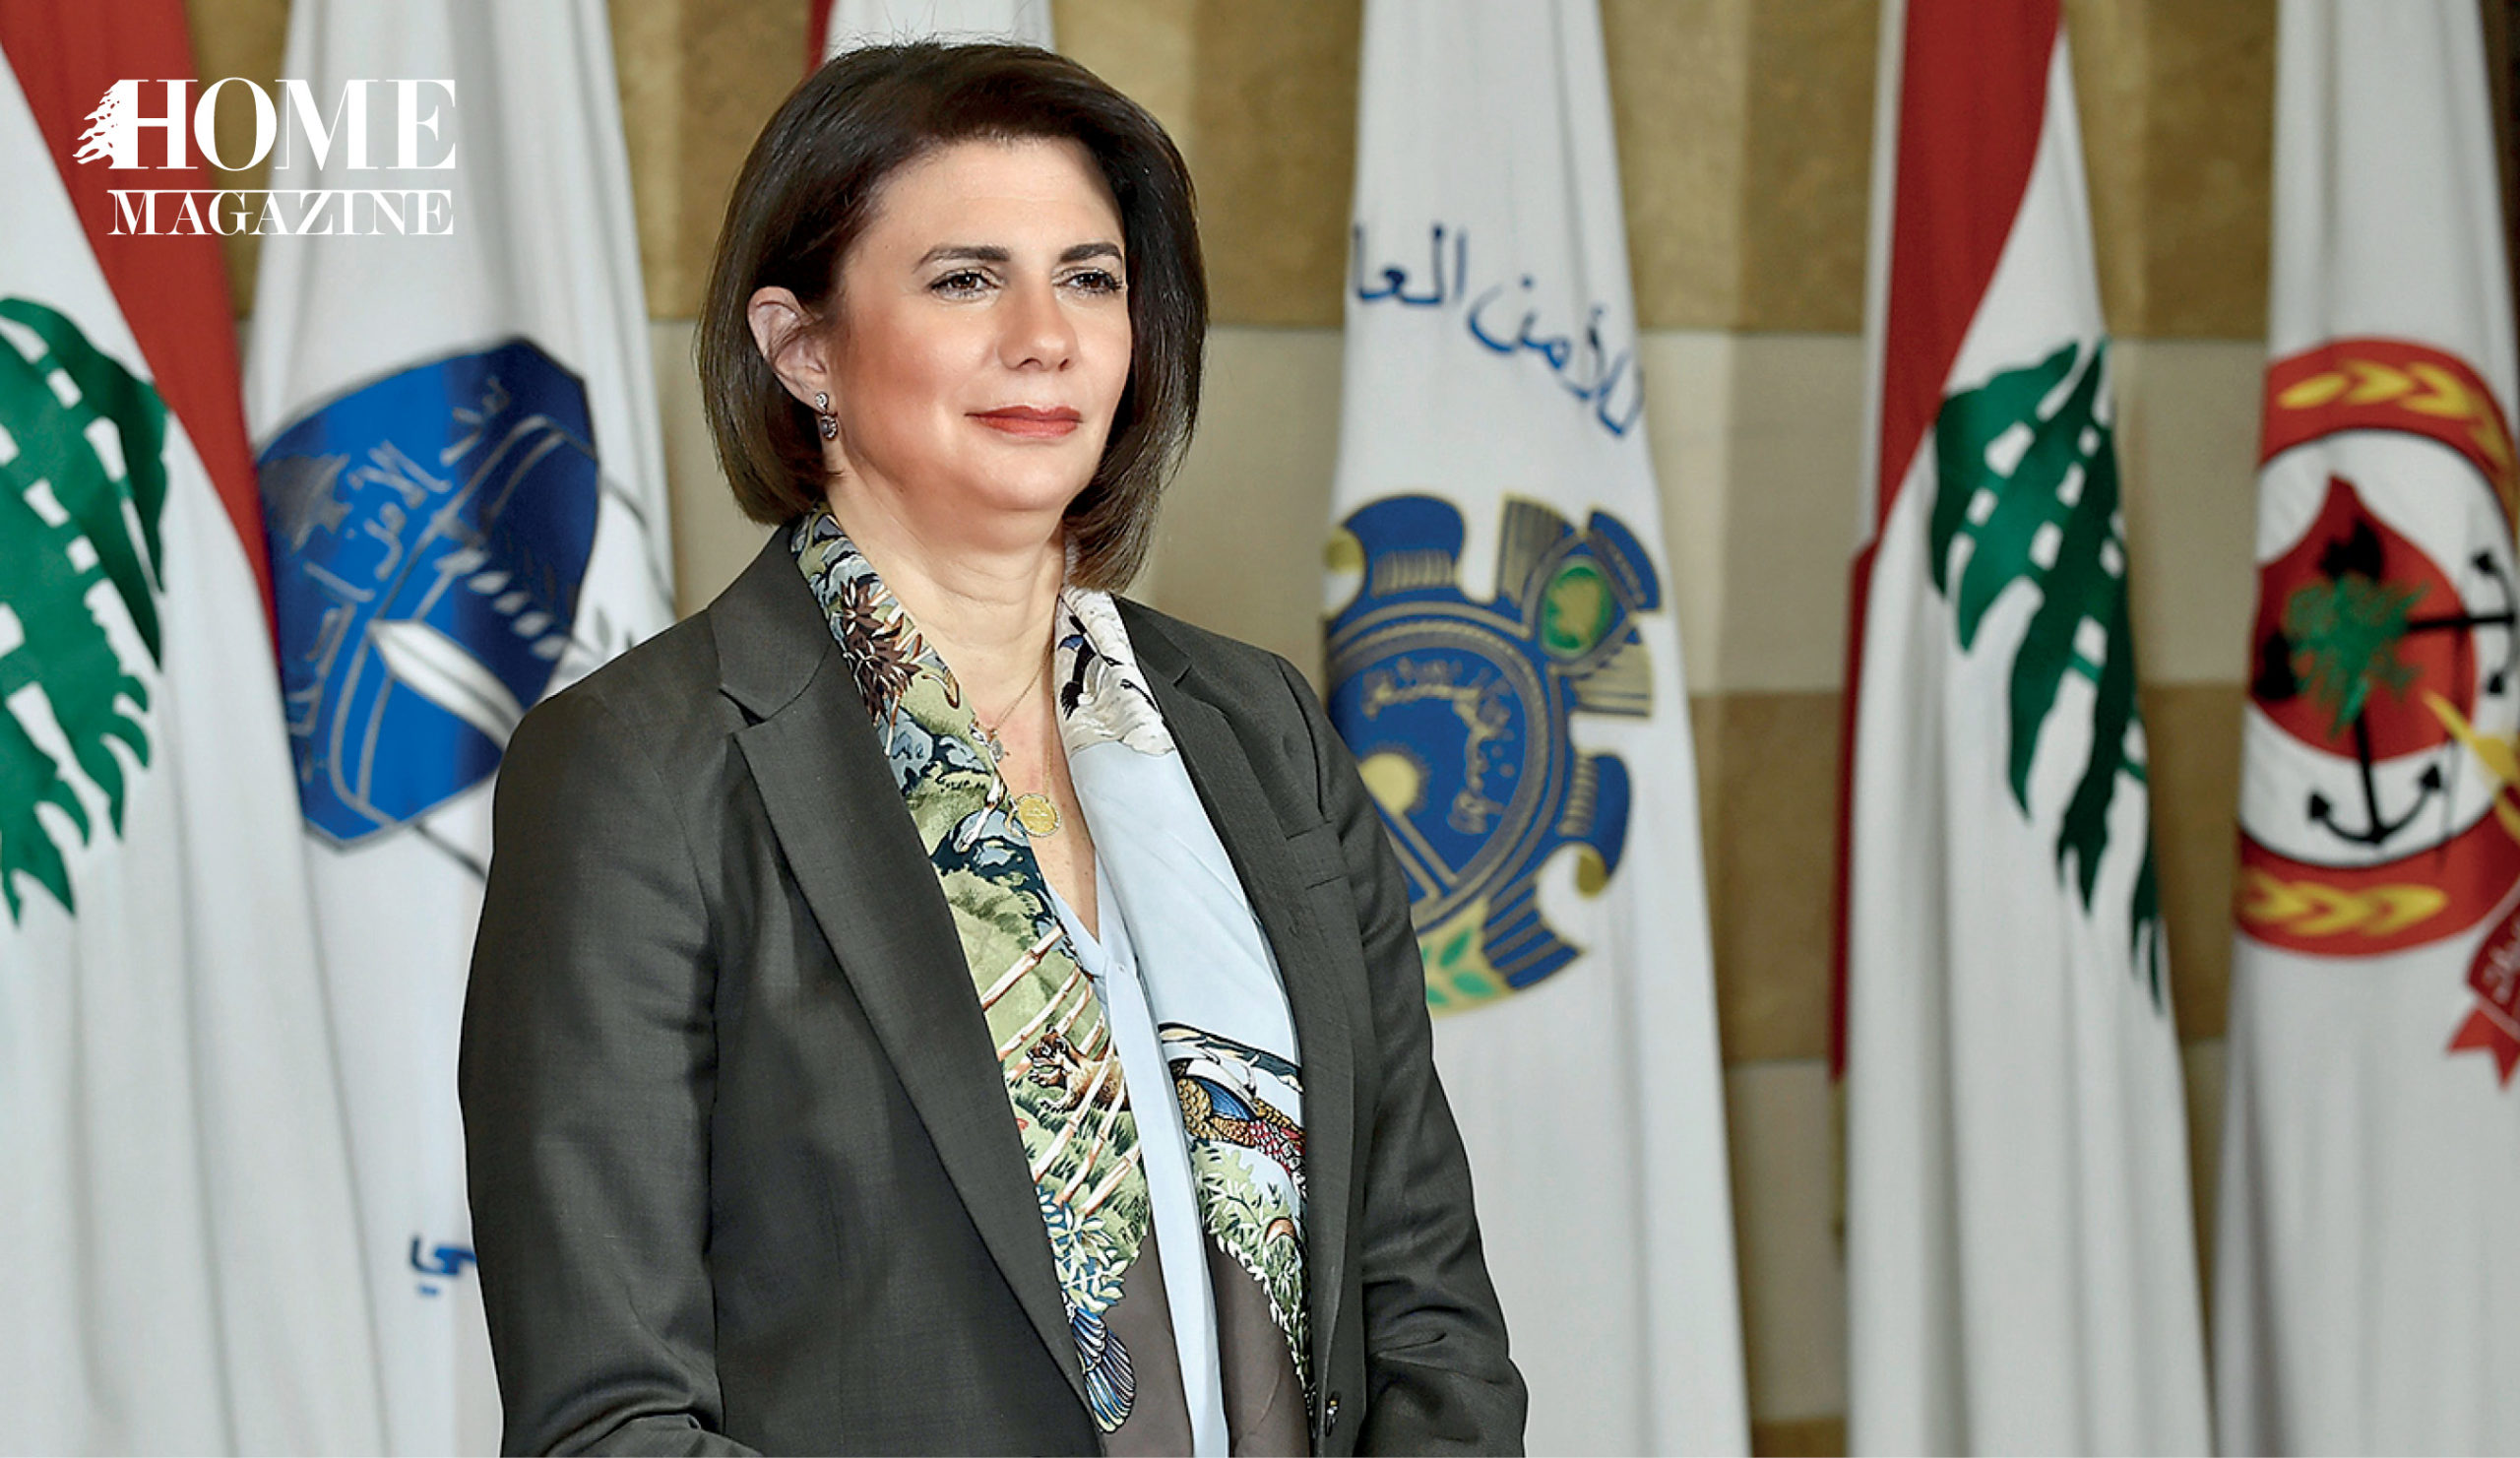 Woman in suit standing in front of flags